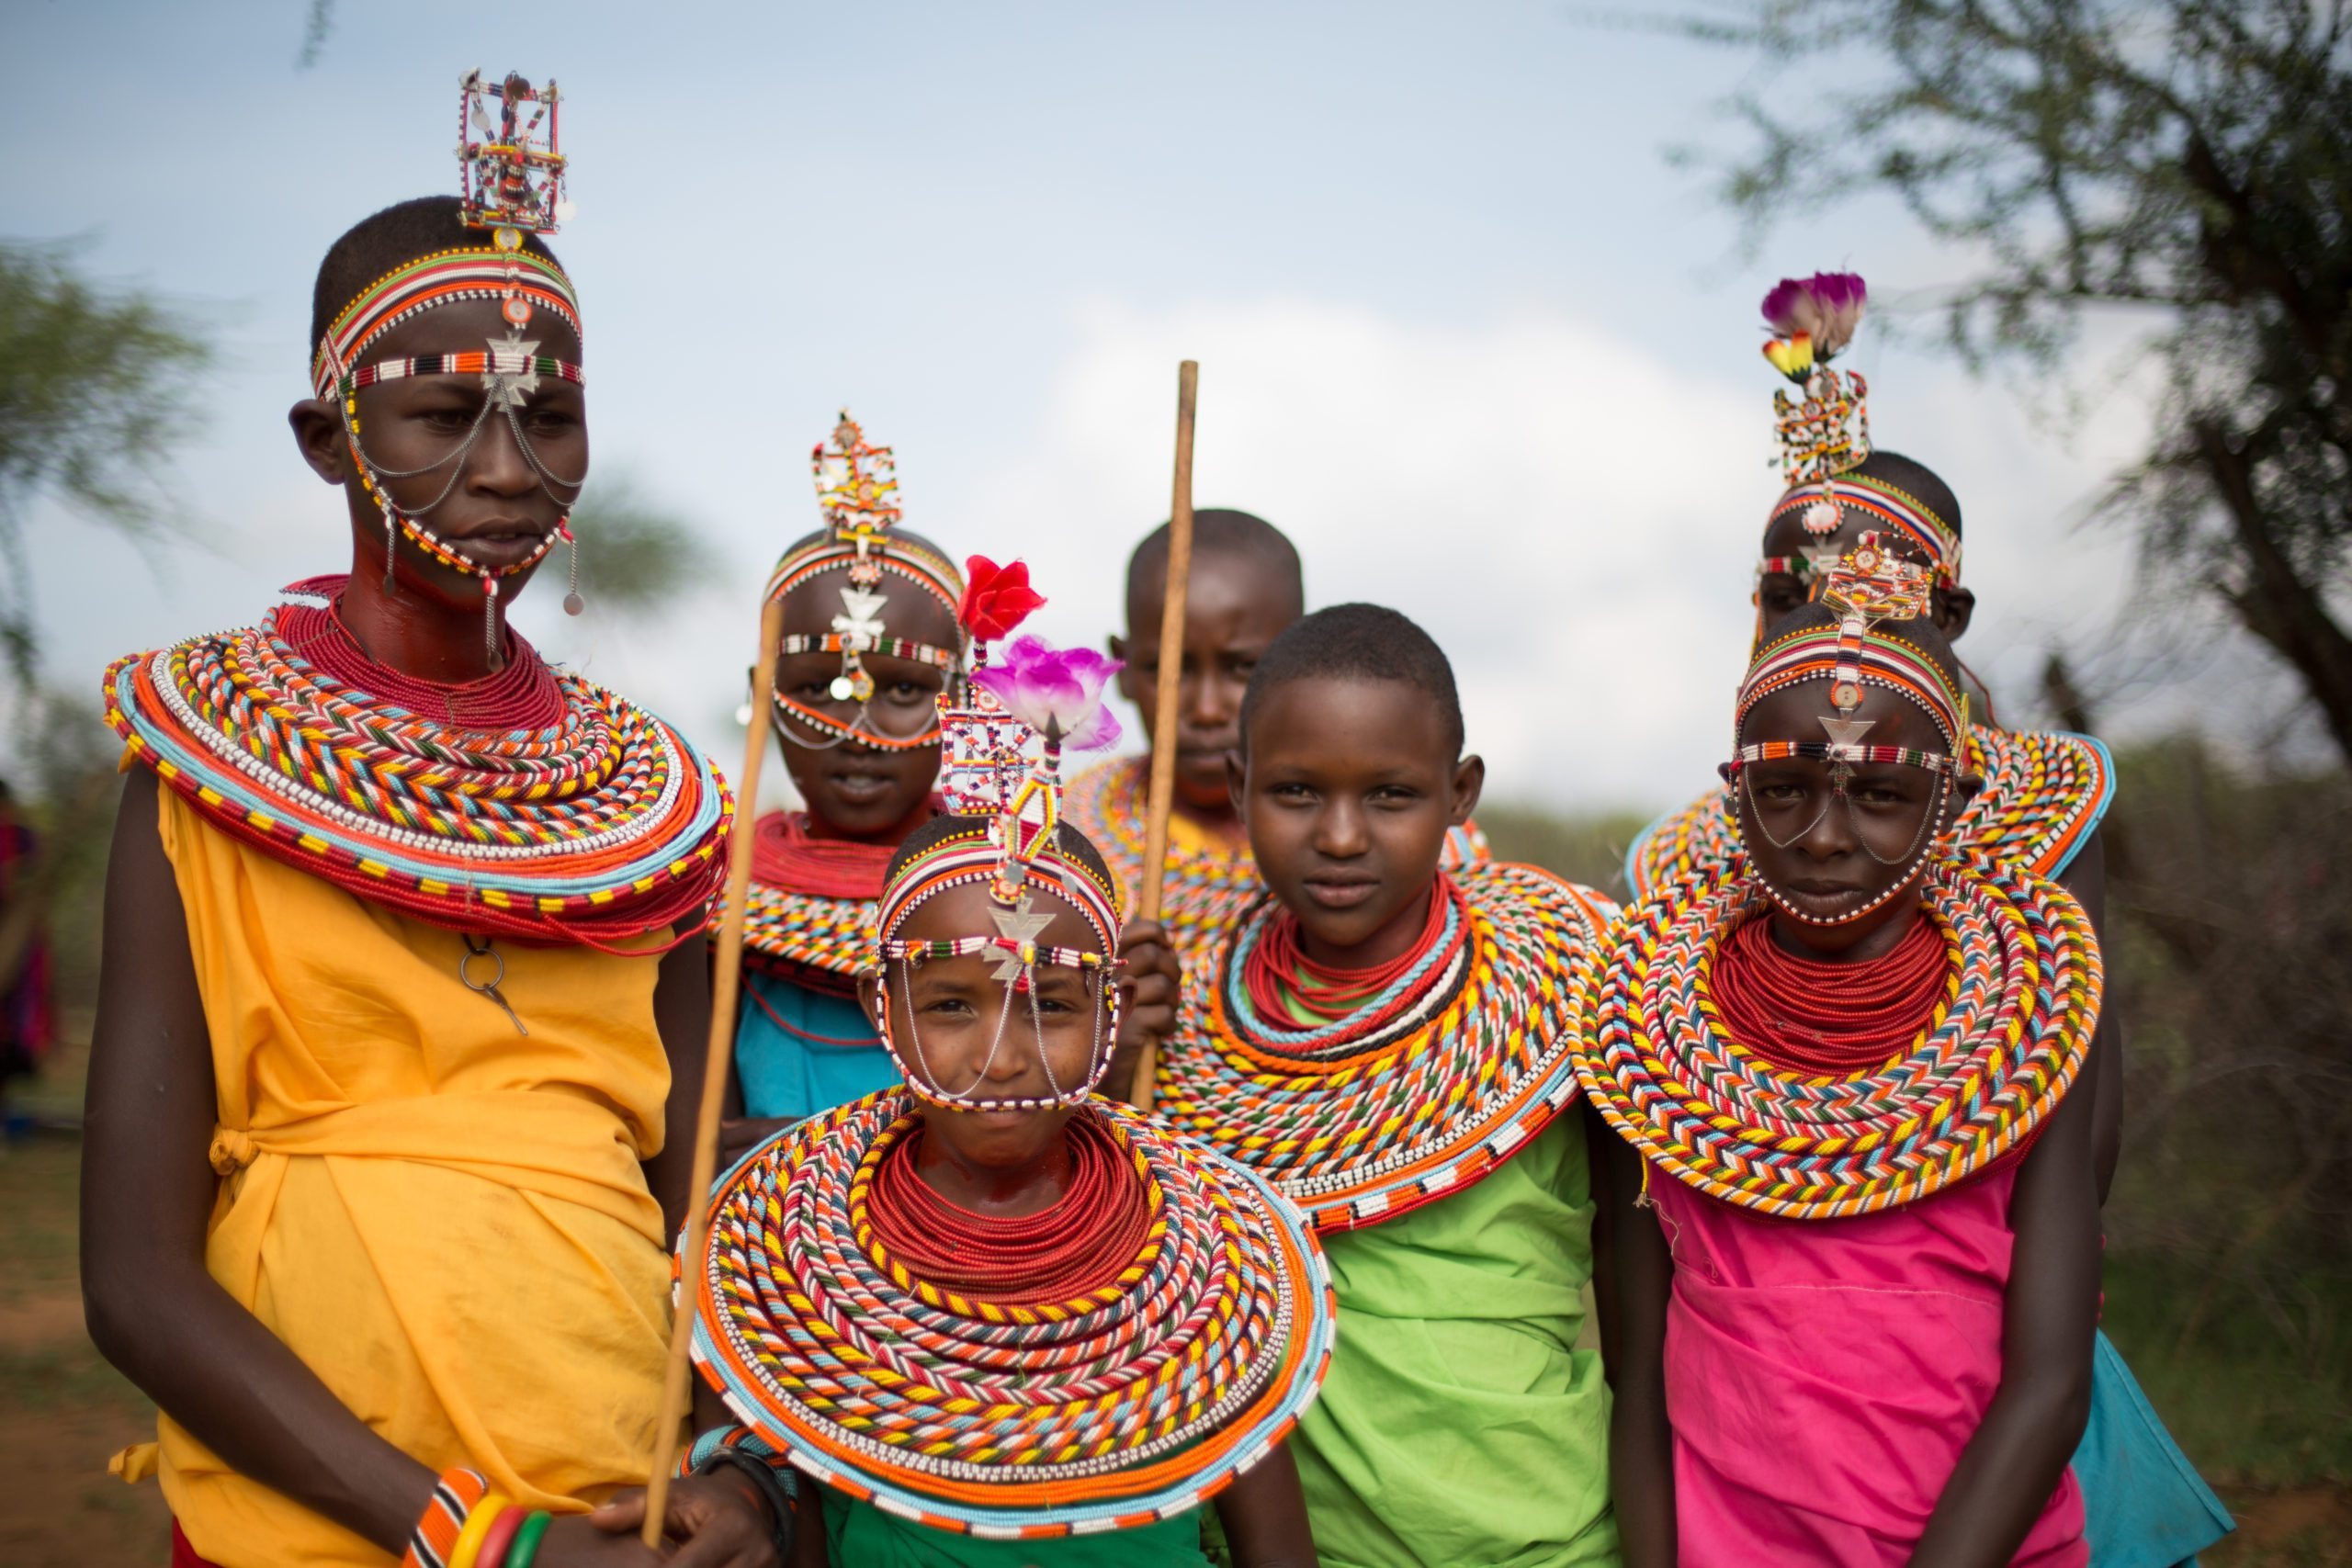 Samburu children in traditional attire